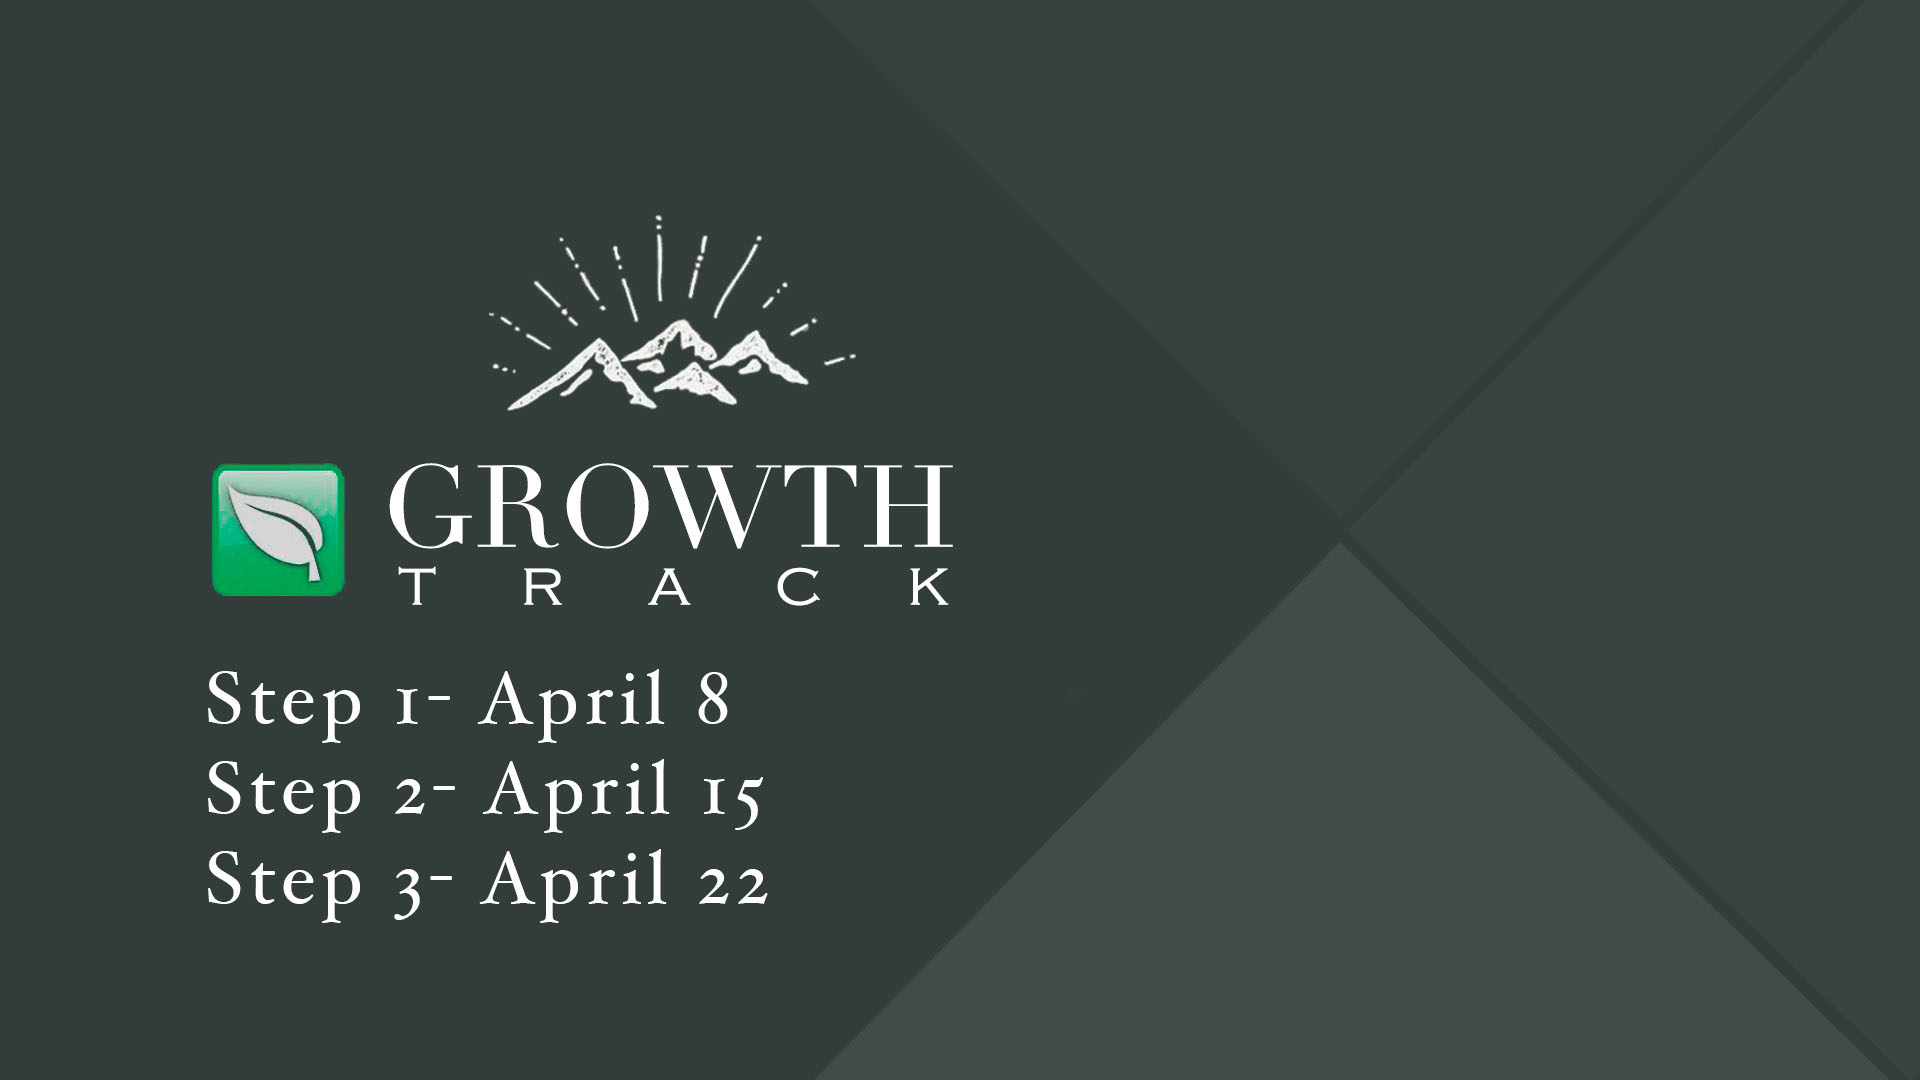 Growth track steps april